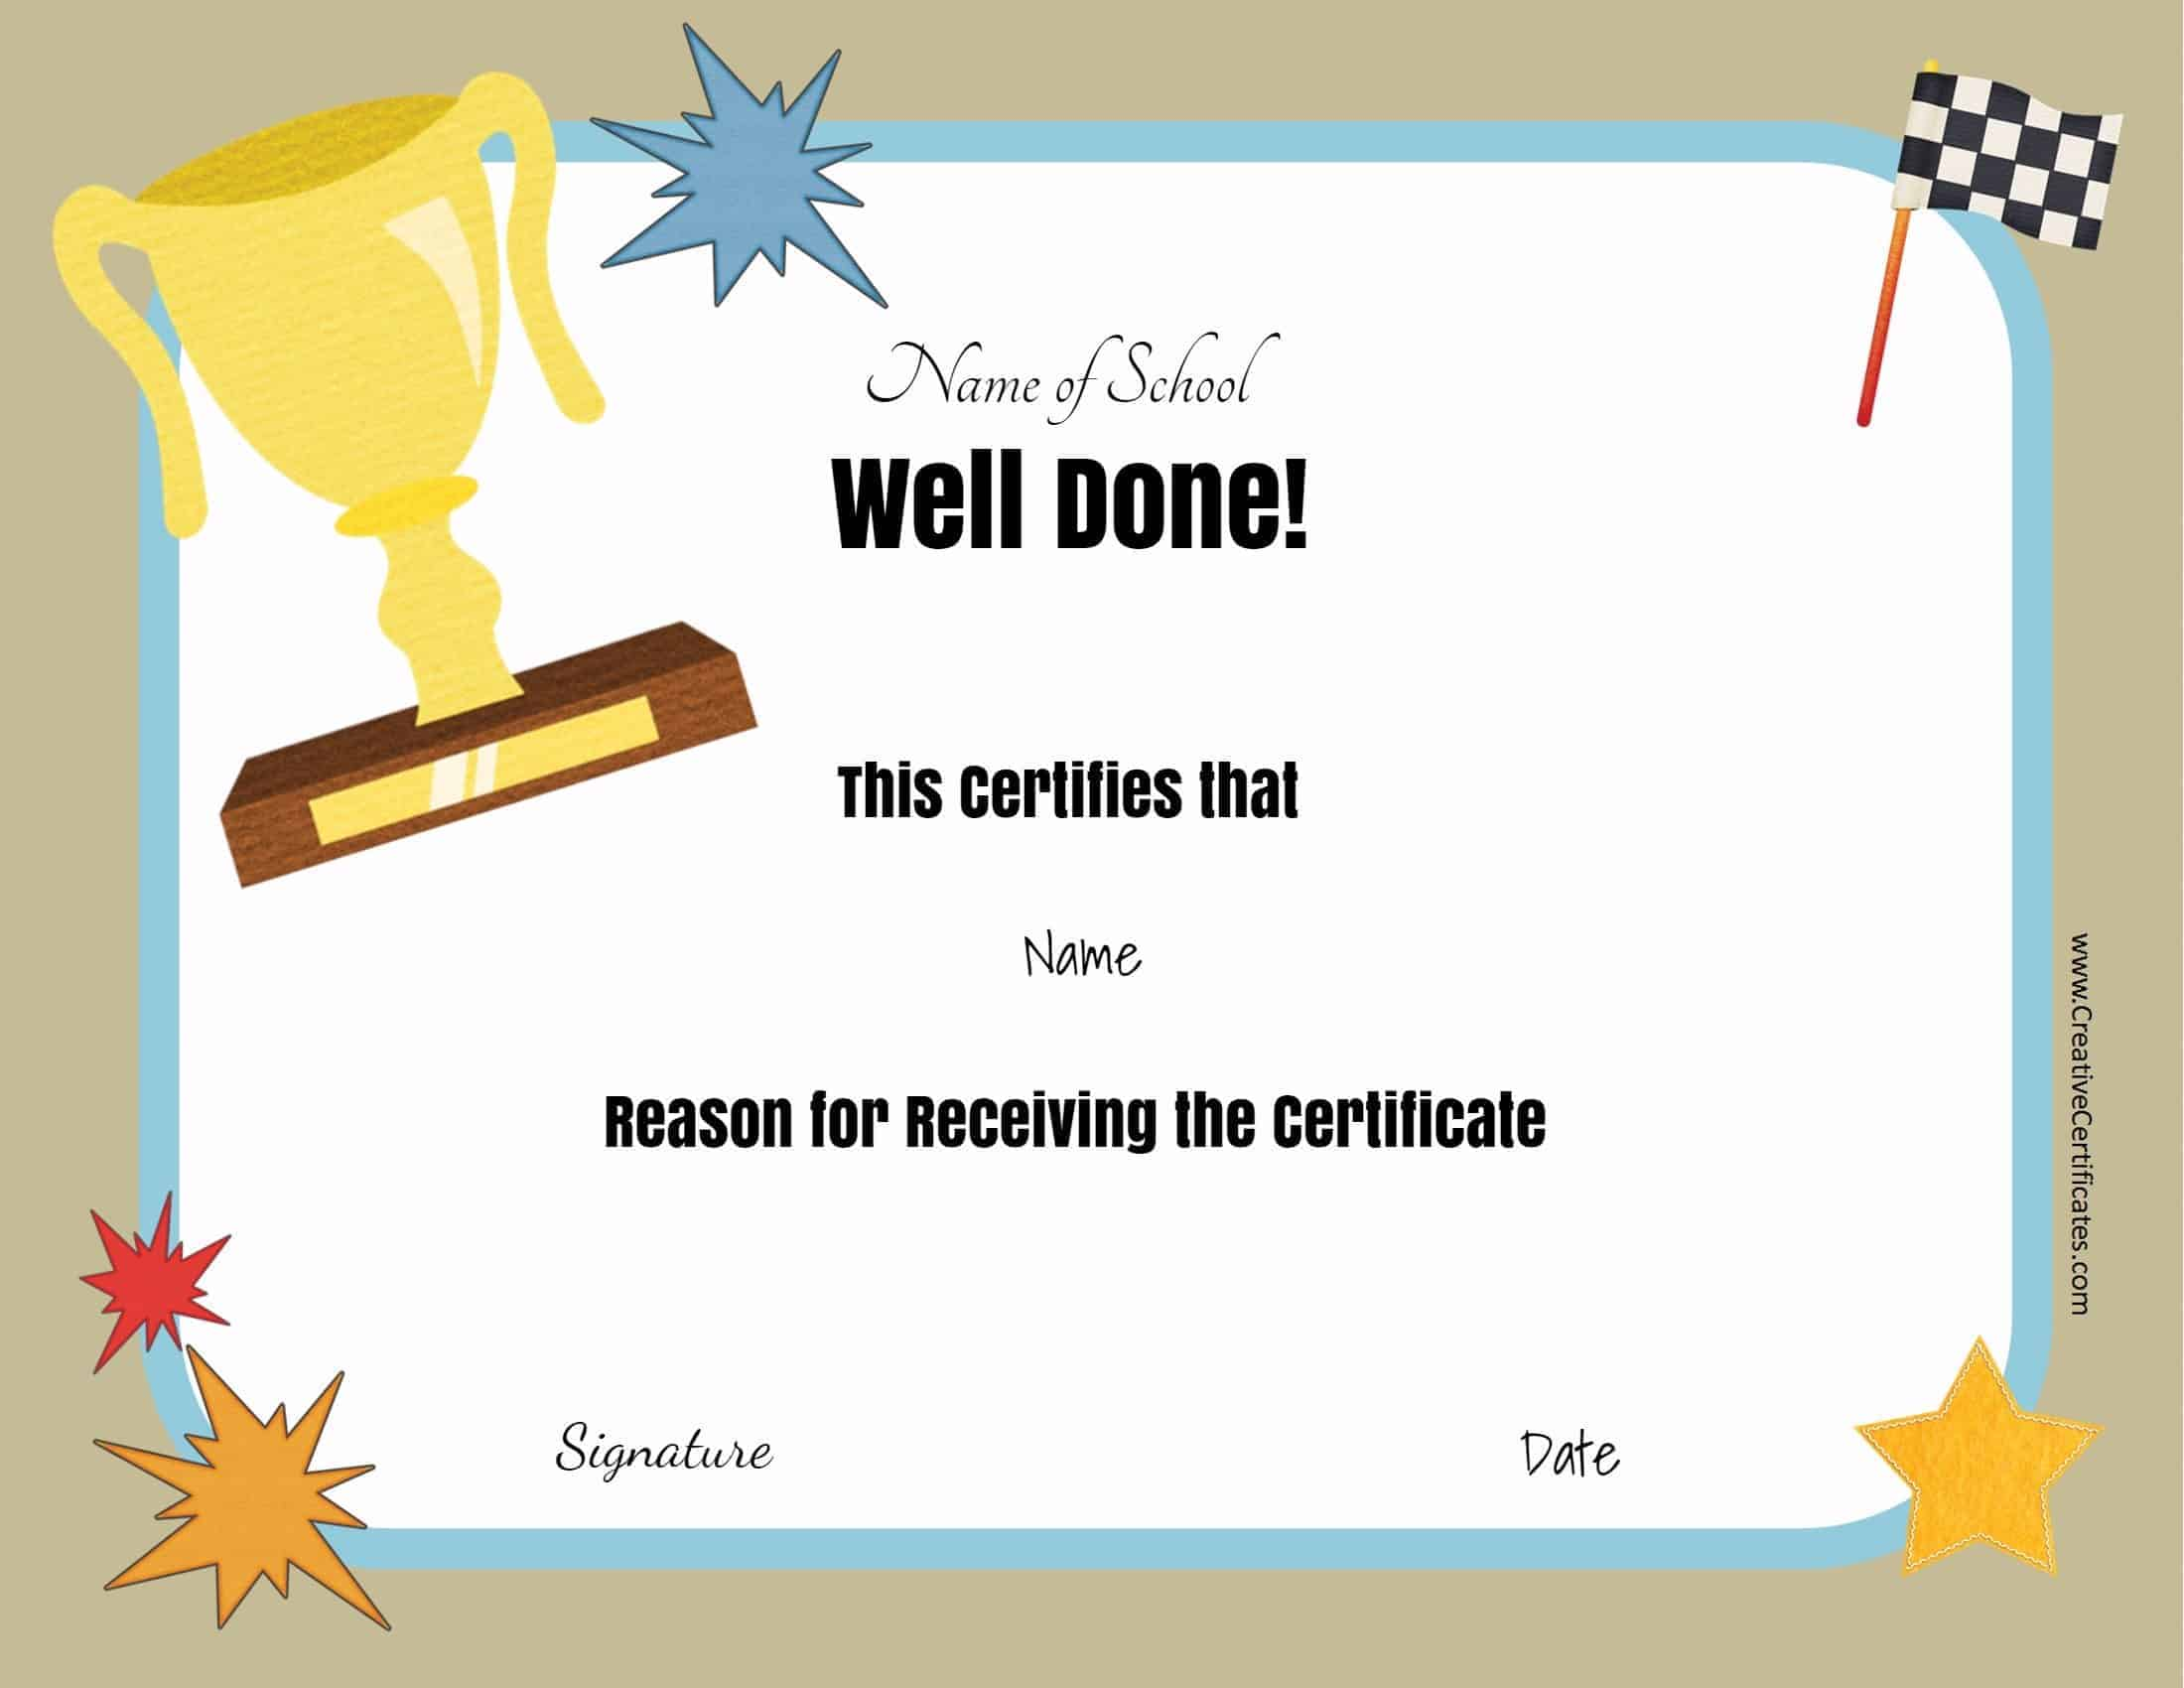 certificates student certificate month printable templates award awards done well template preschool kindergarten completion creativecertificates physical education customize teacher prize